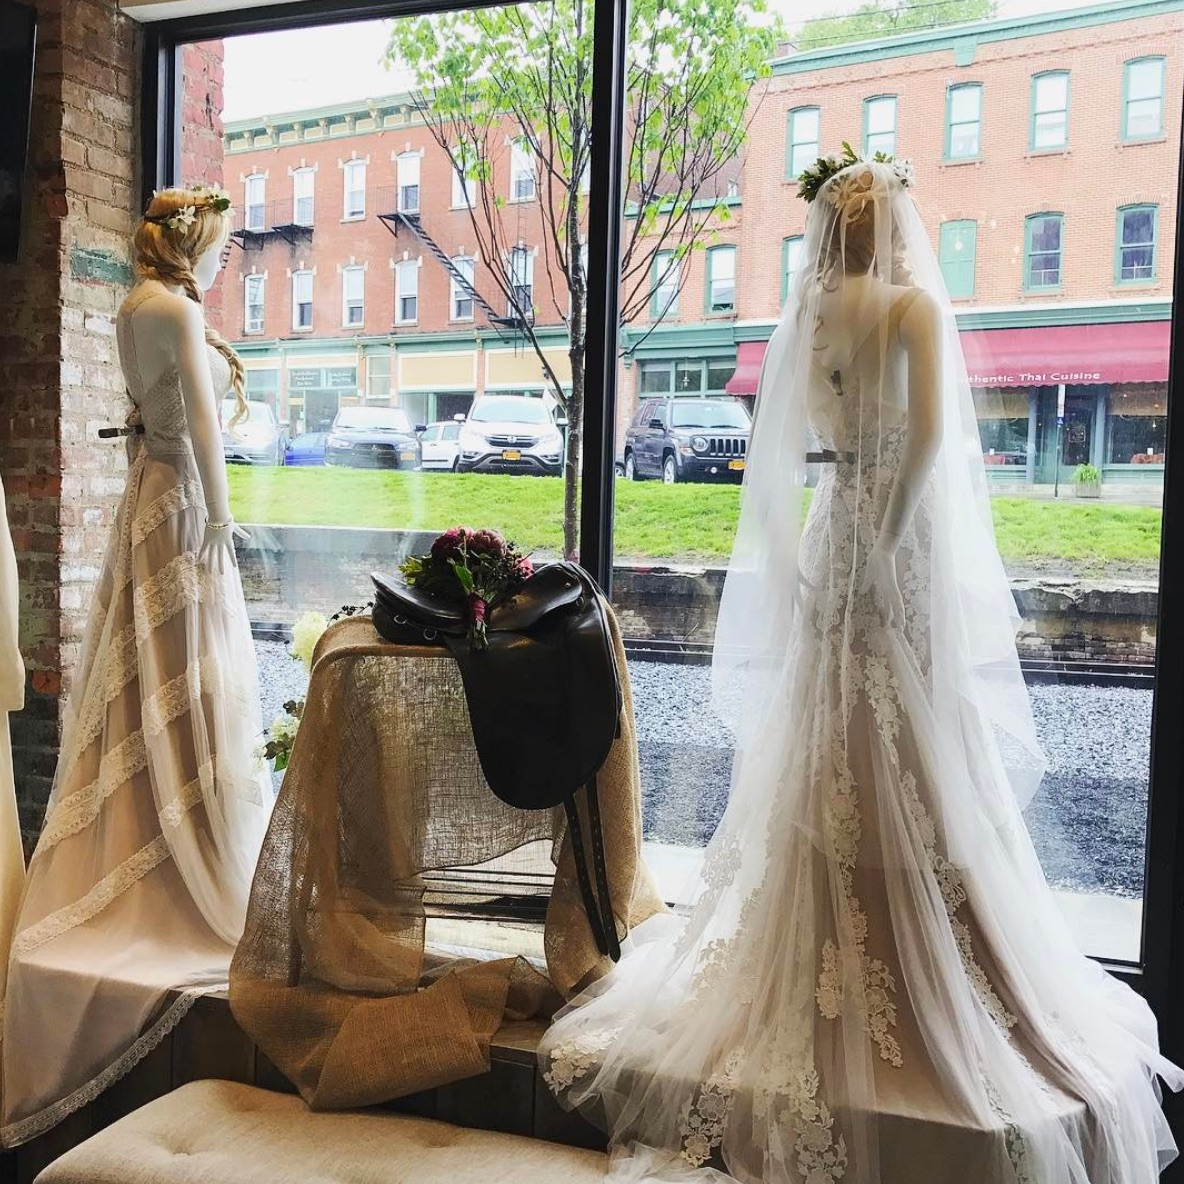 View from the inside of Lambs Hill boutique,looking up past the train tracks at Main Street in Beacon, NY.